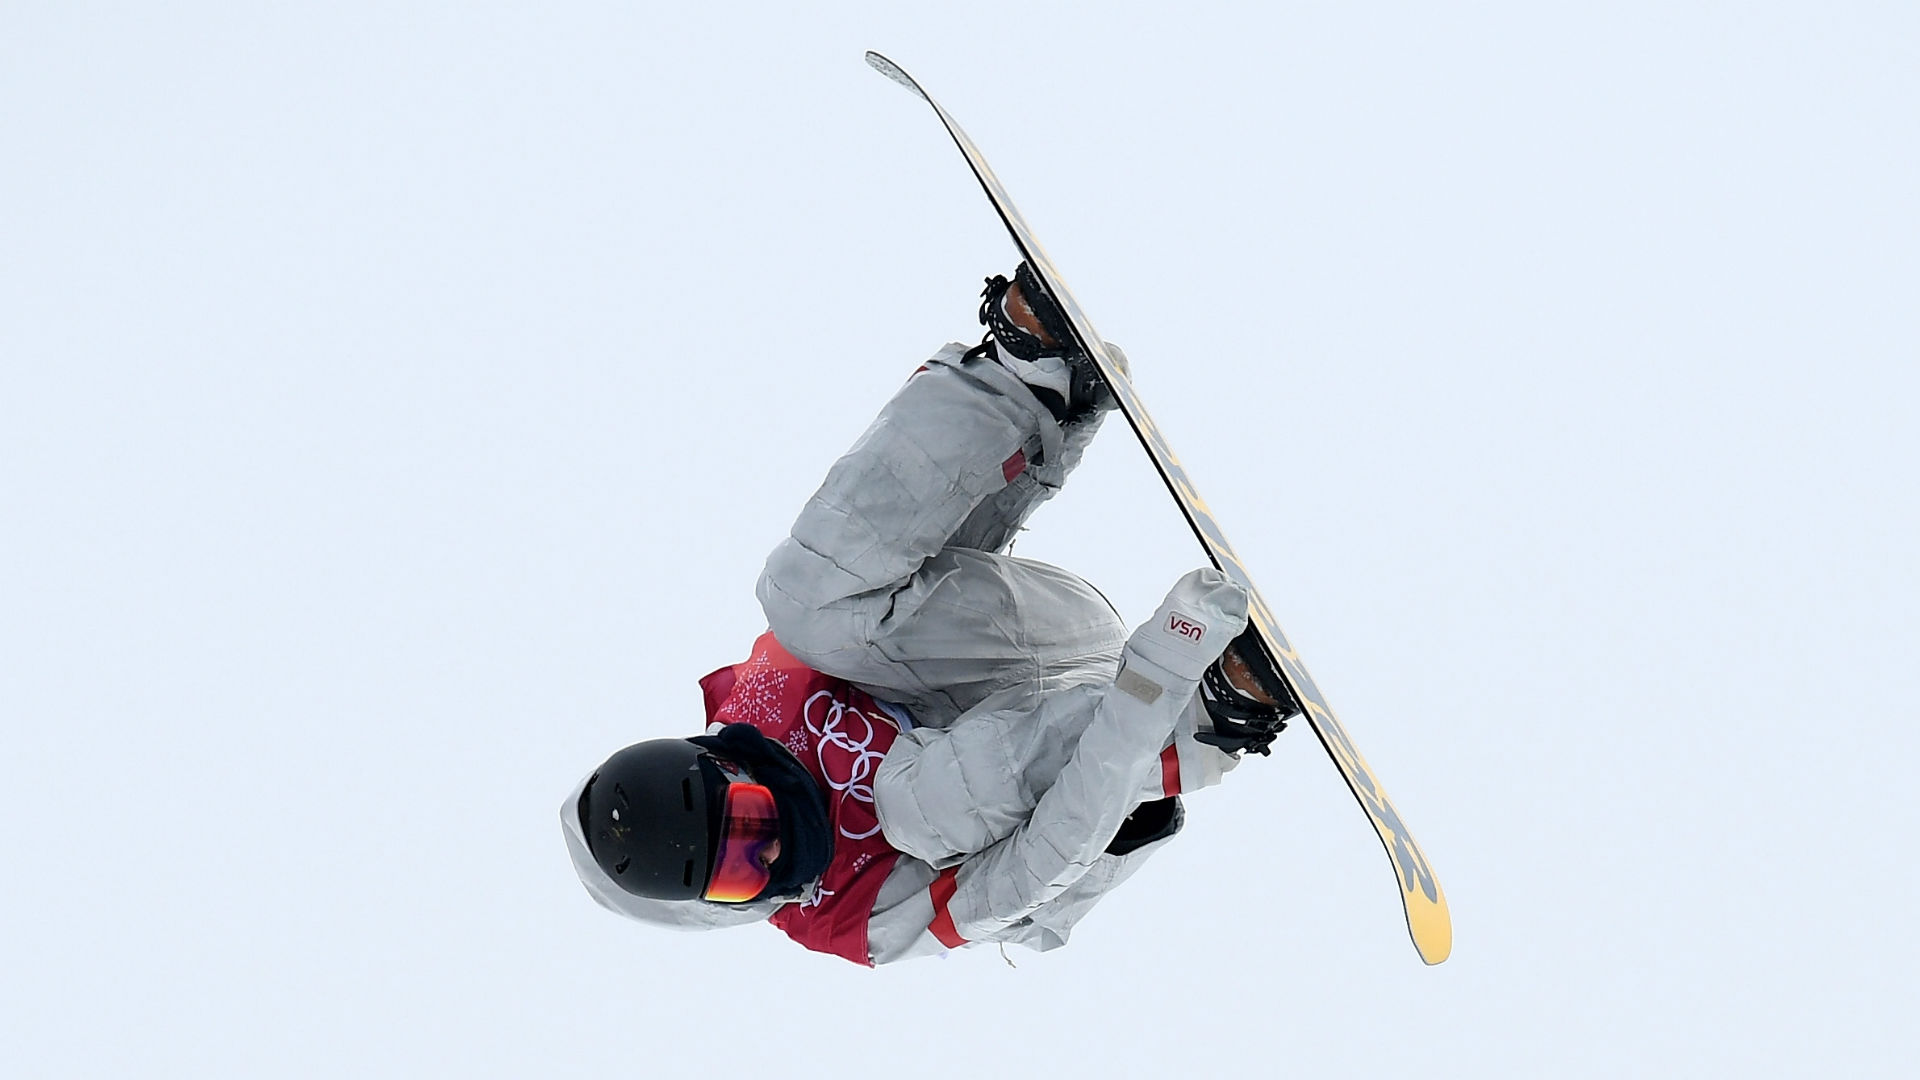 Canadian snowboarder Sebastien Toutant wins gold in men's big air